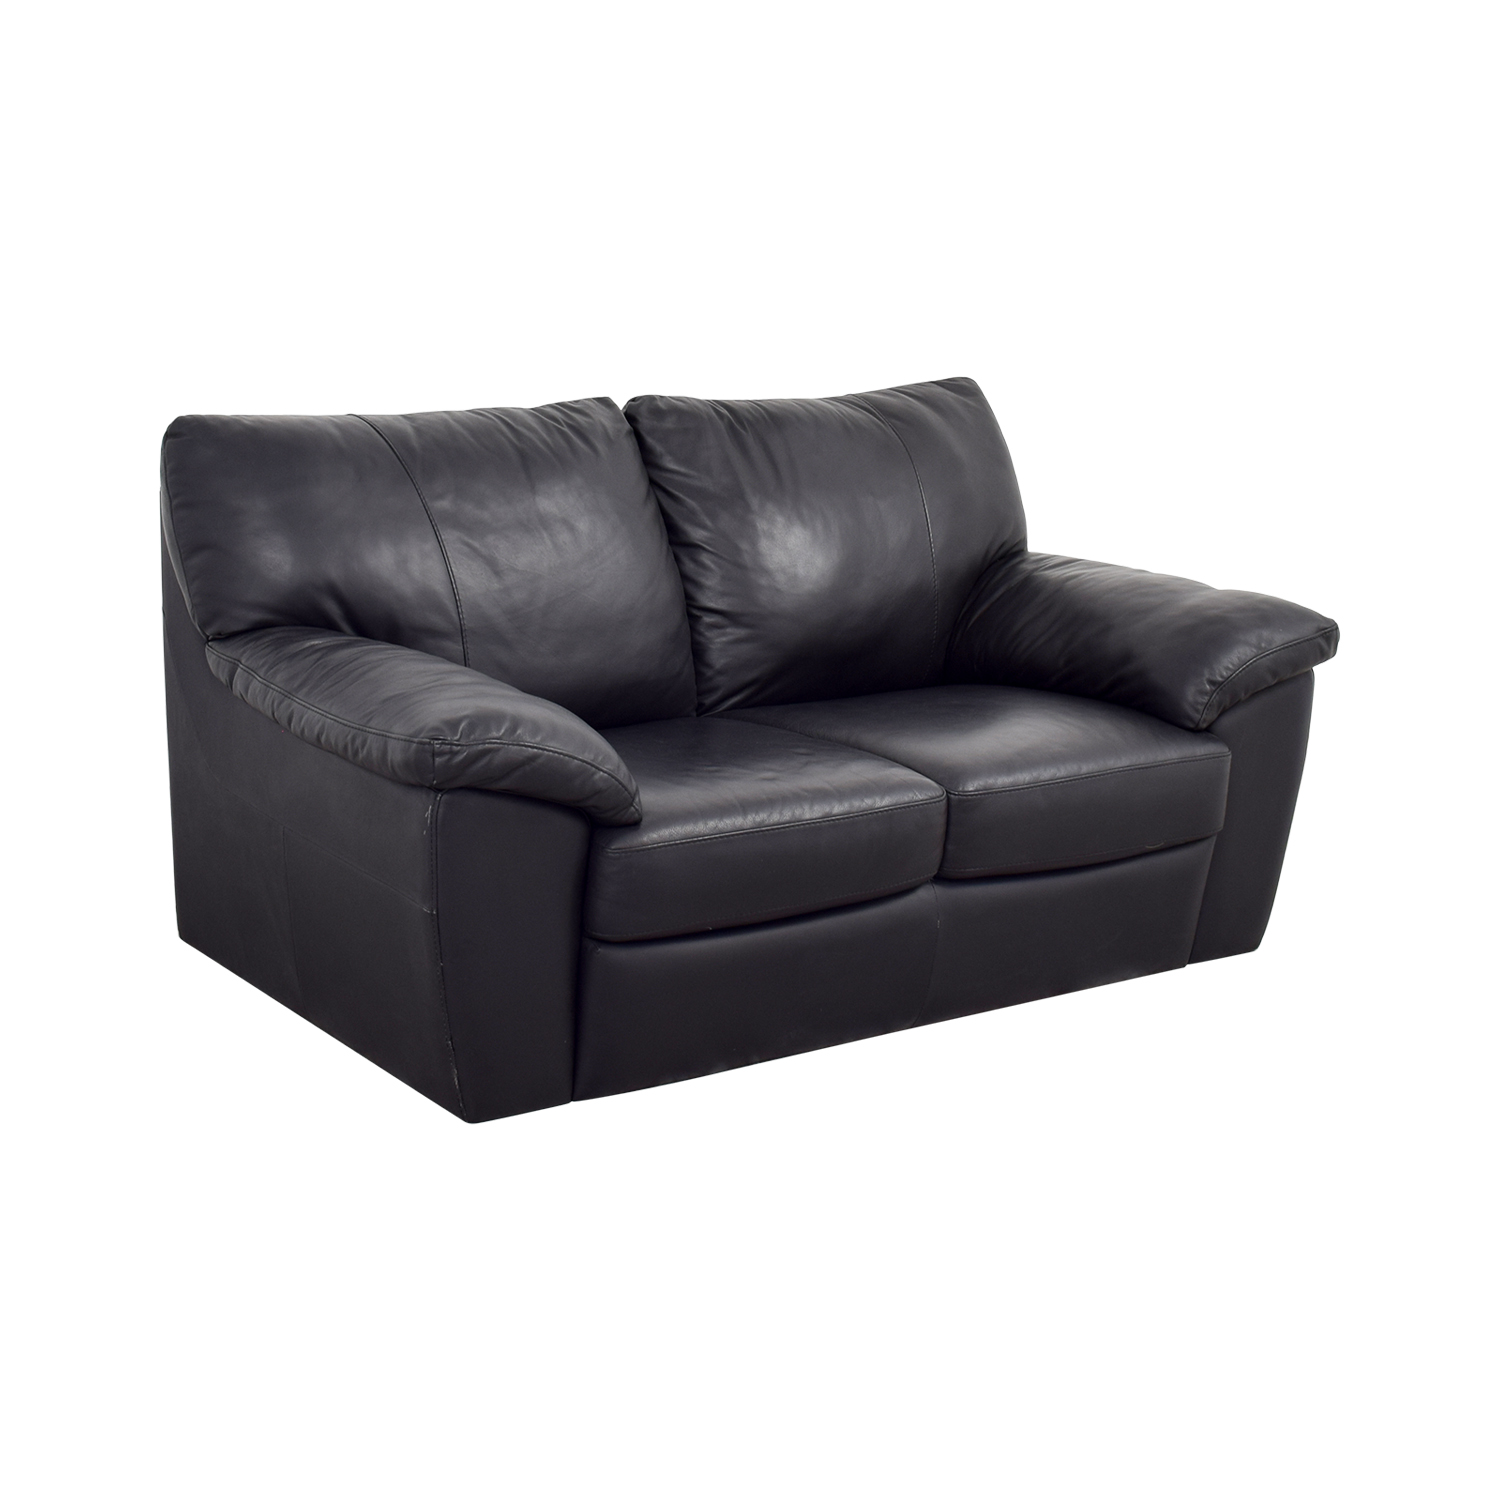 Black Leather Chairs Ikea 81 Off Ikea Ikea Black Leather Two Cushion Couch Sofas